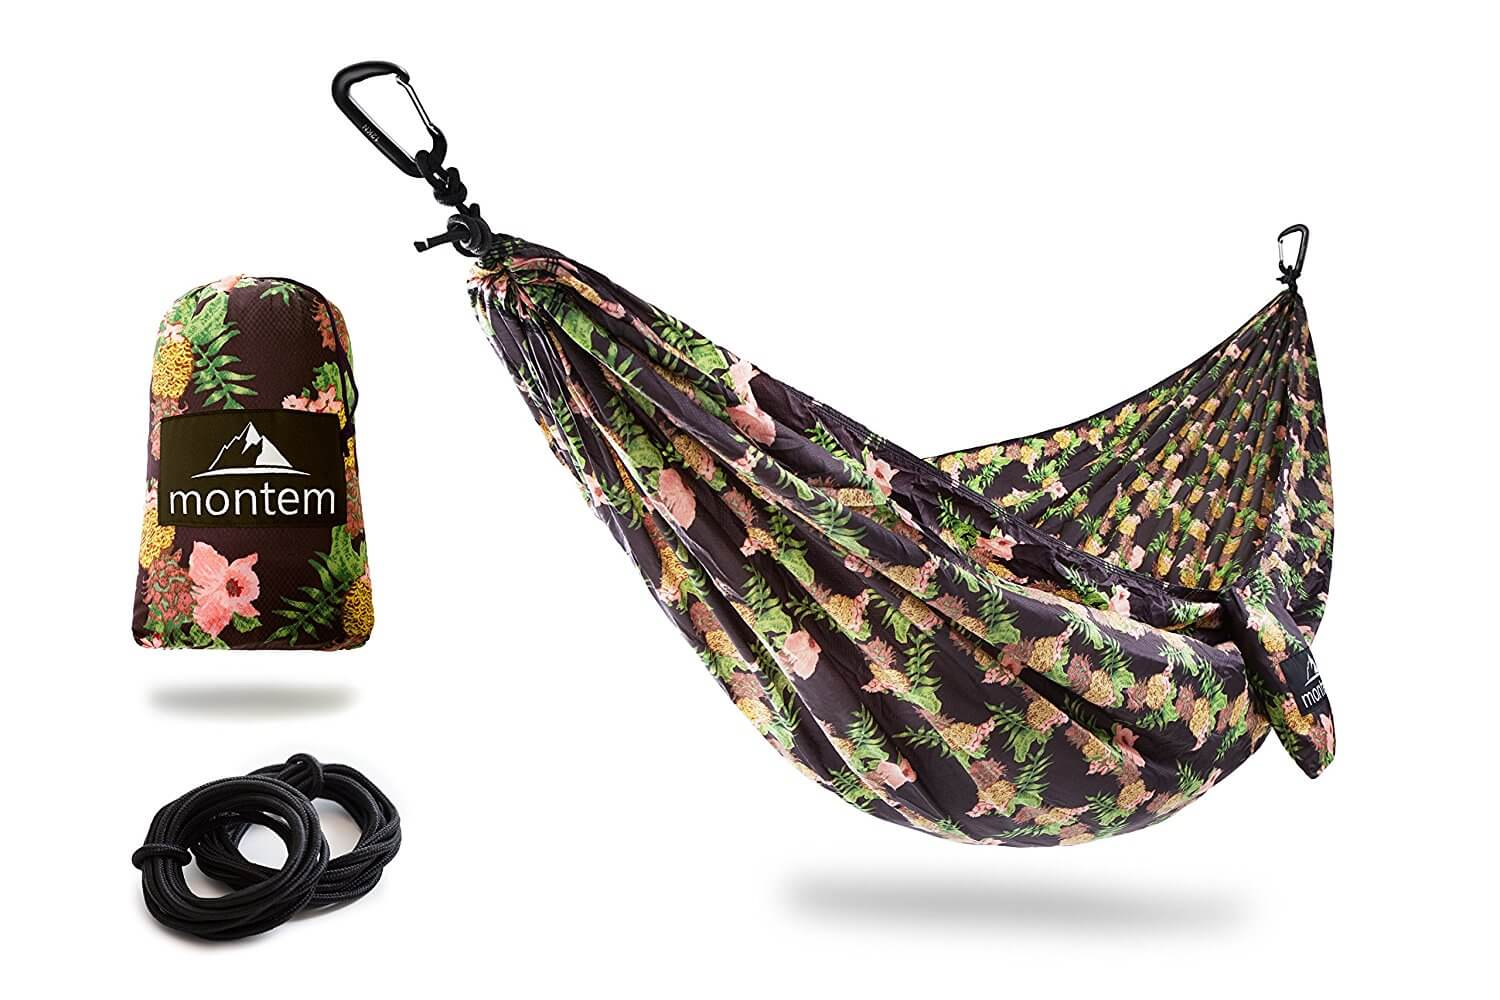 Montem Fly Napple Amp Chill Camping Hammock Review